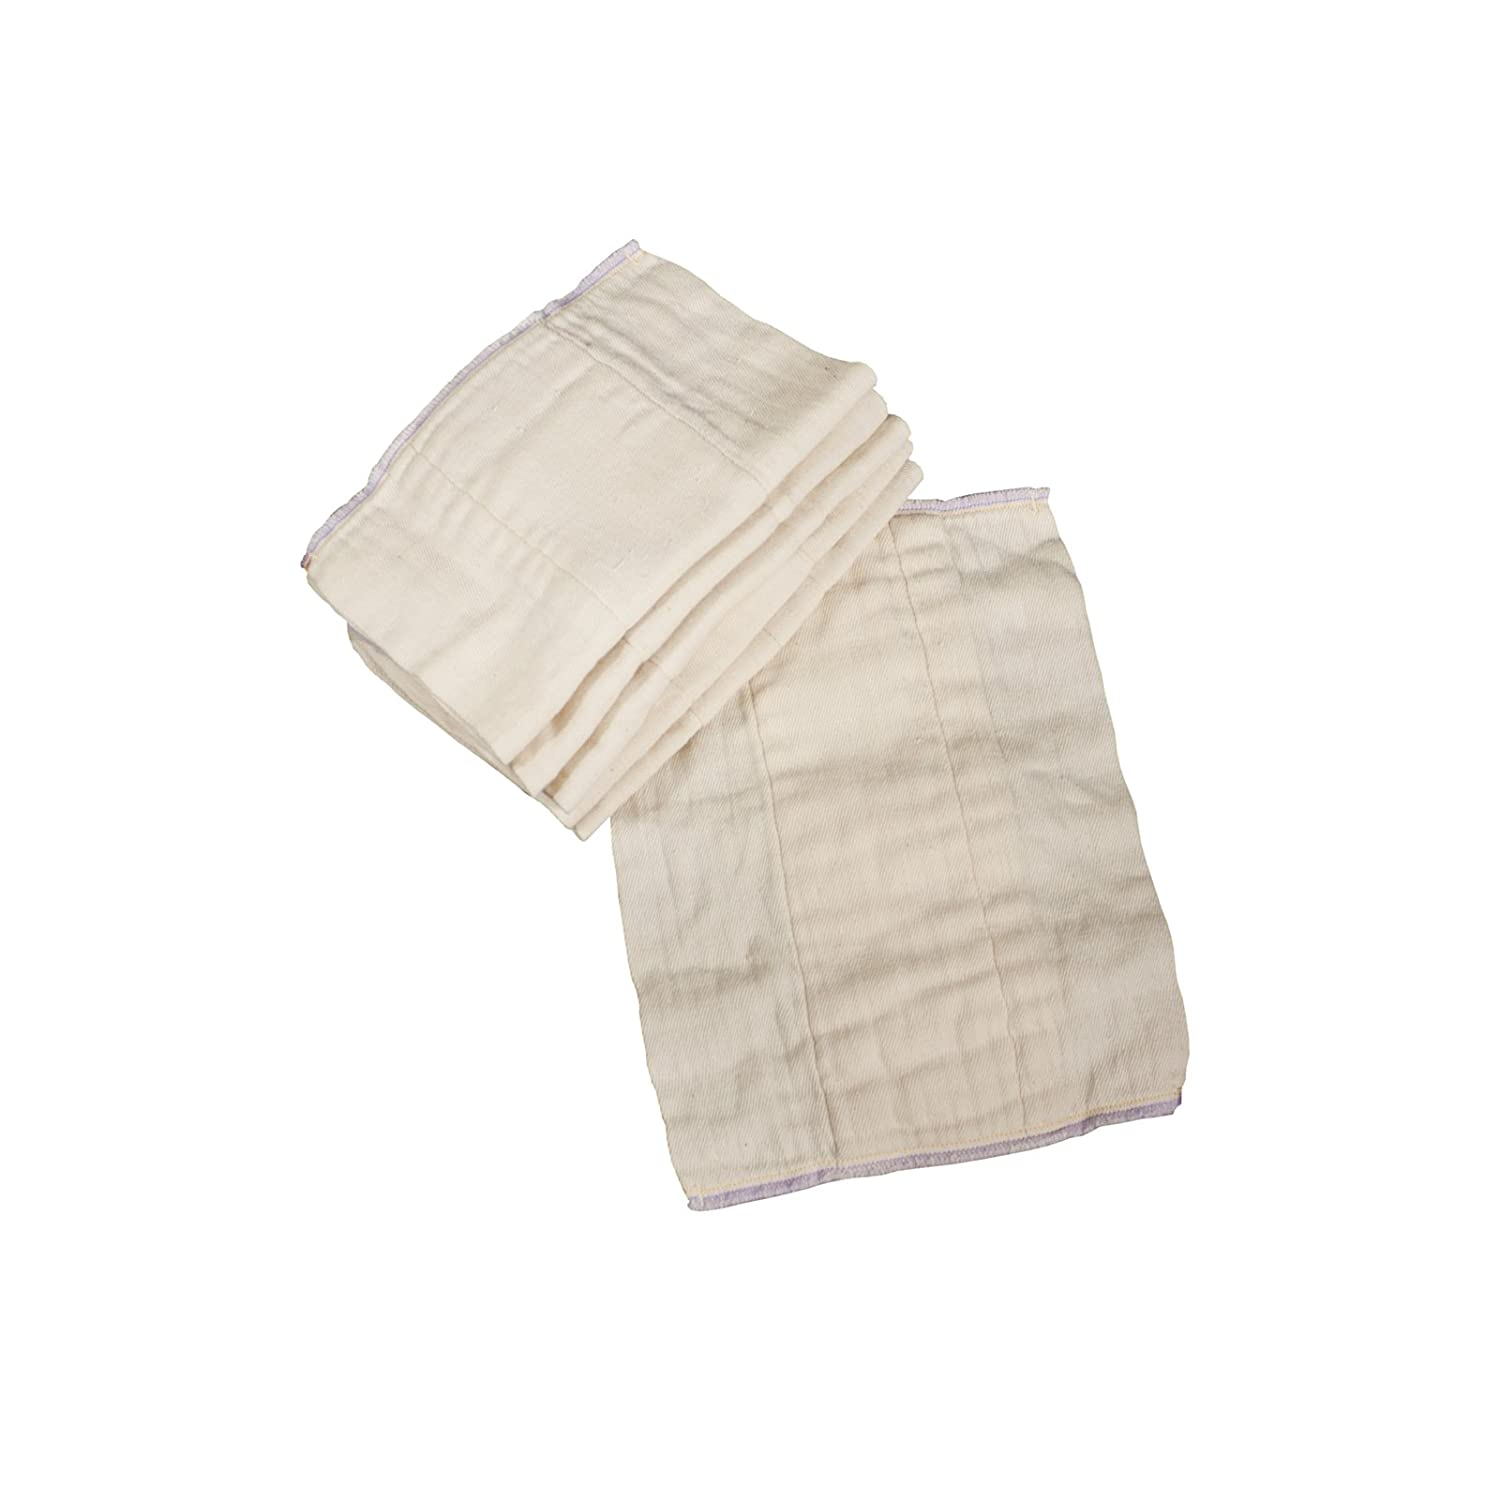 OsoCozy - Indian Cotton - Unbleached Prefold Cloth Diapers (1 dz.) (Preemie 2x6x2 (4-10 lbs)) All Together Diaper Co.